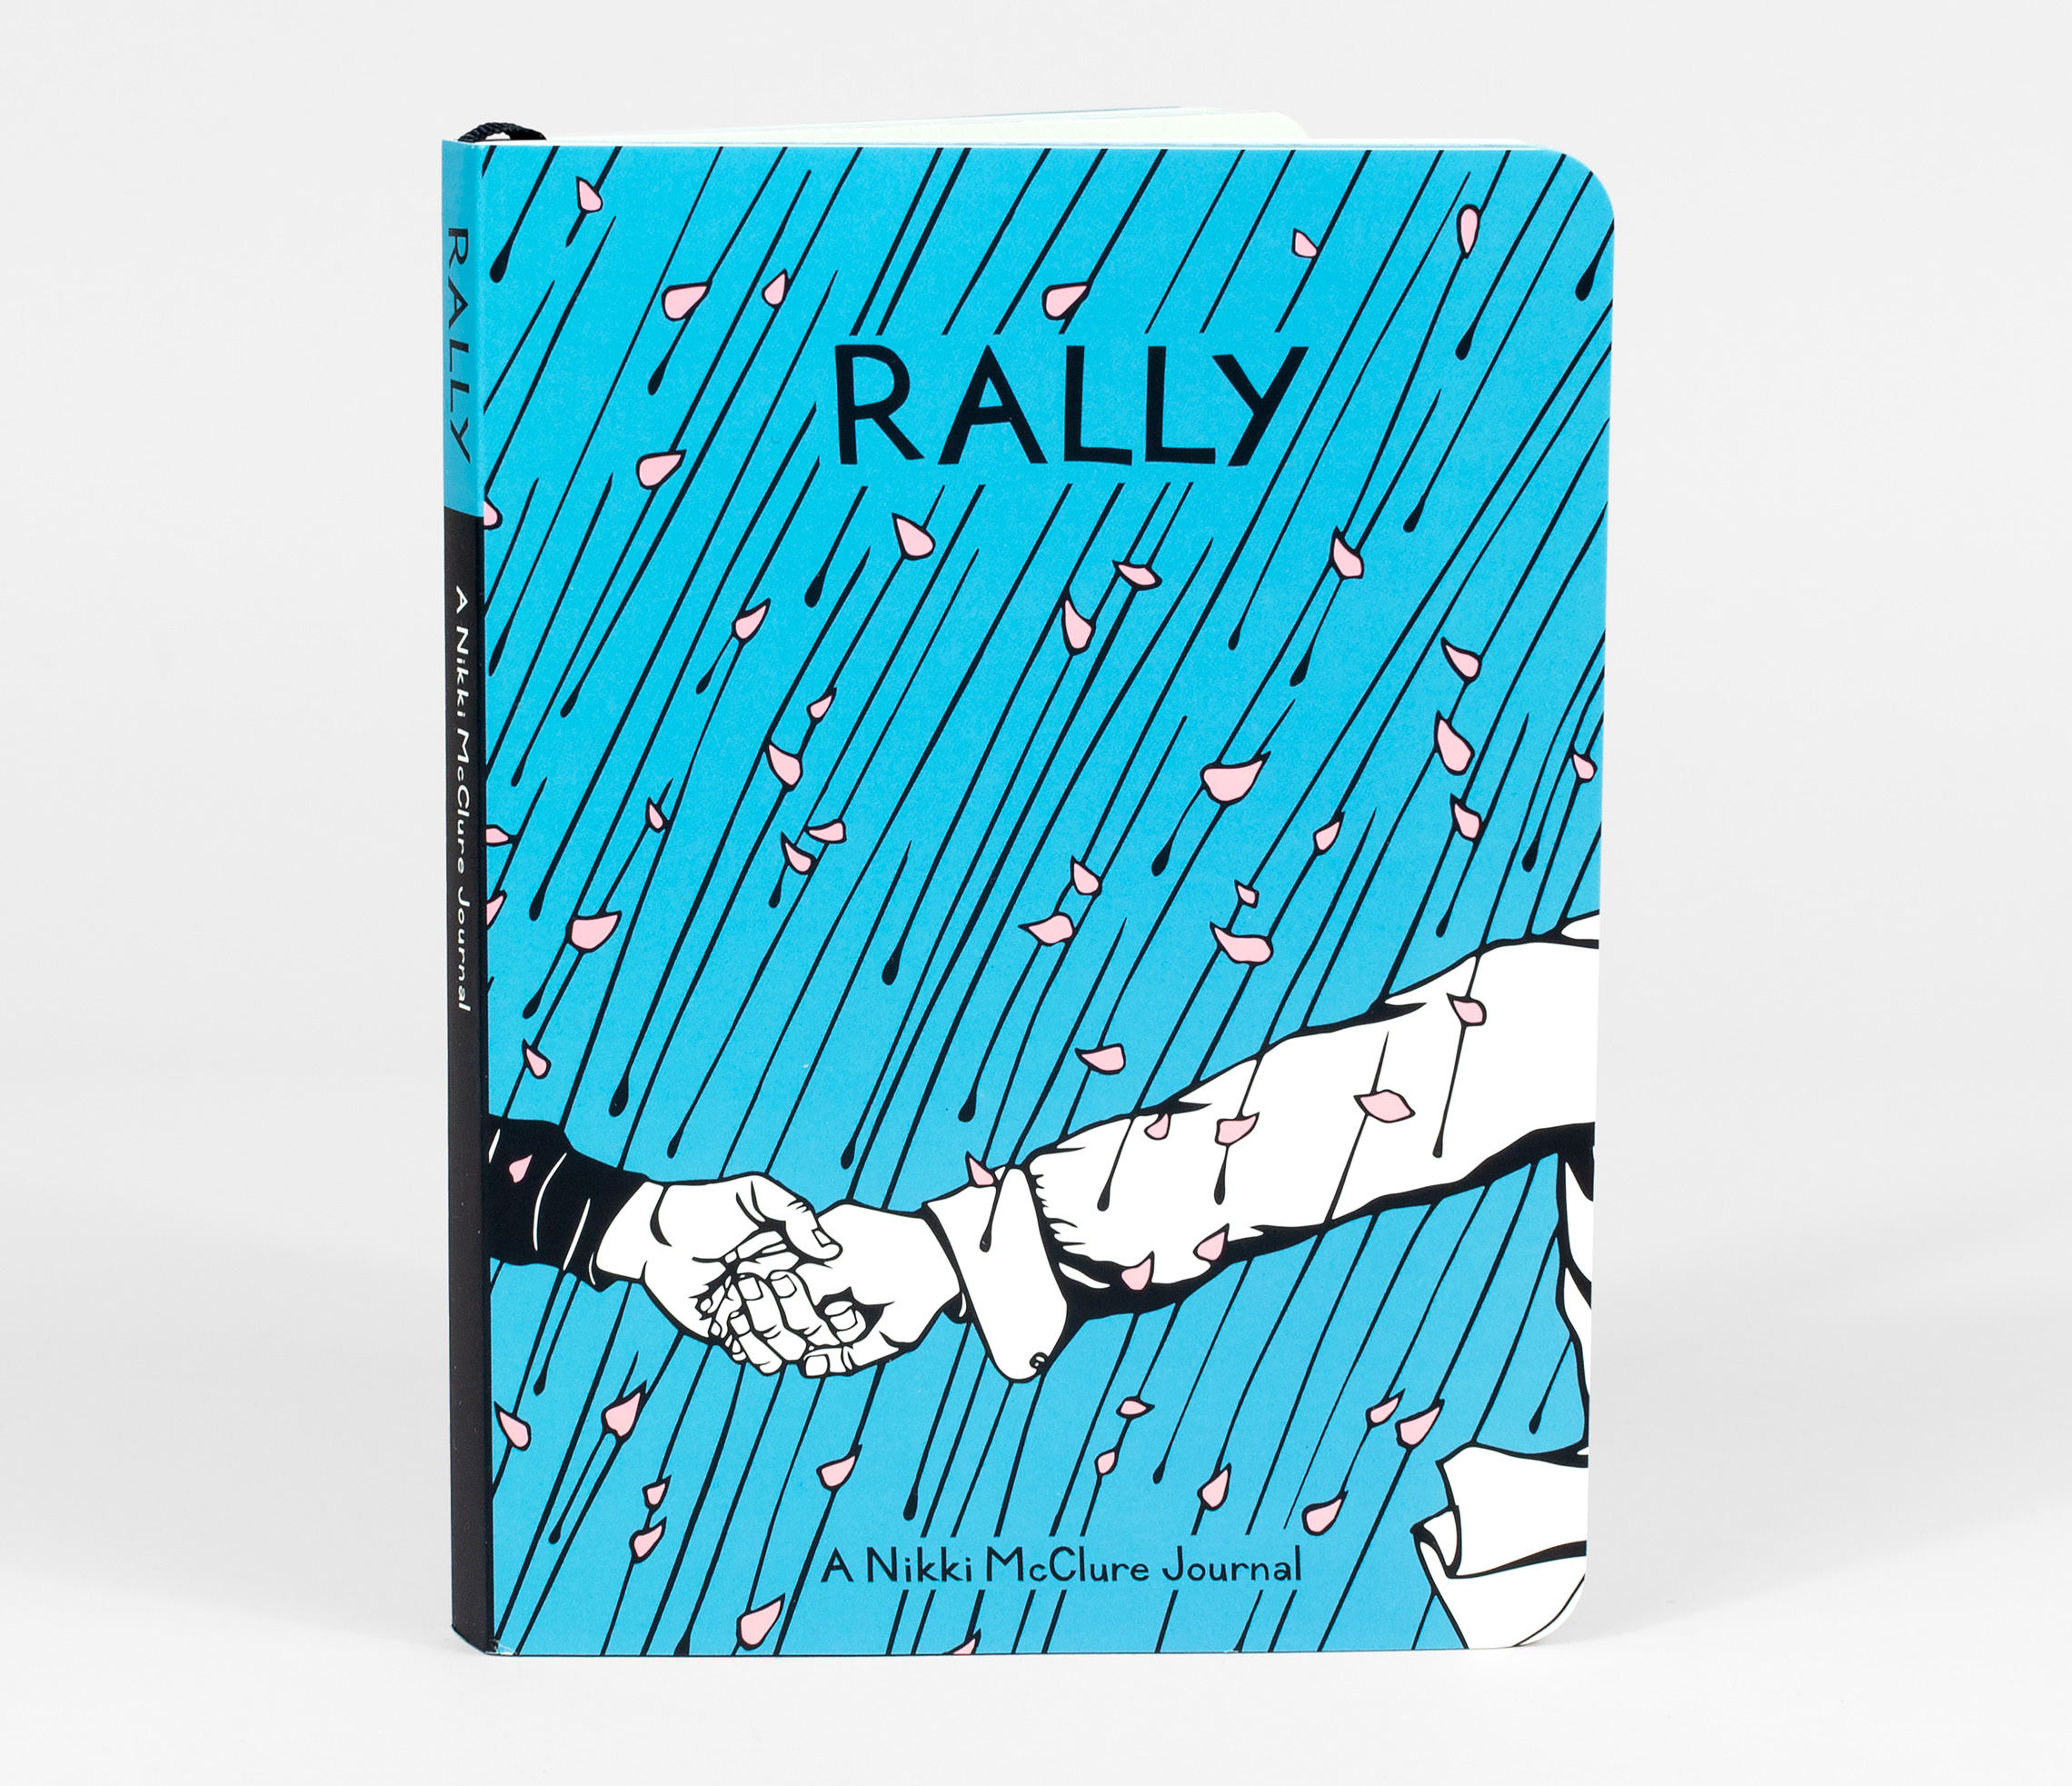 Nikki McClure - Rally, journal